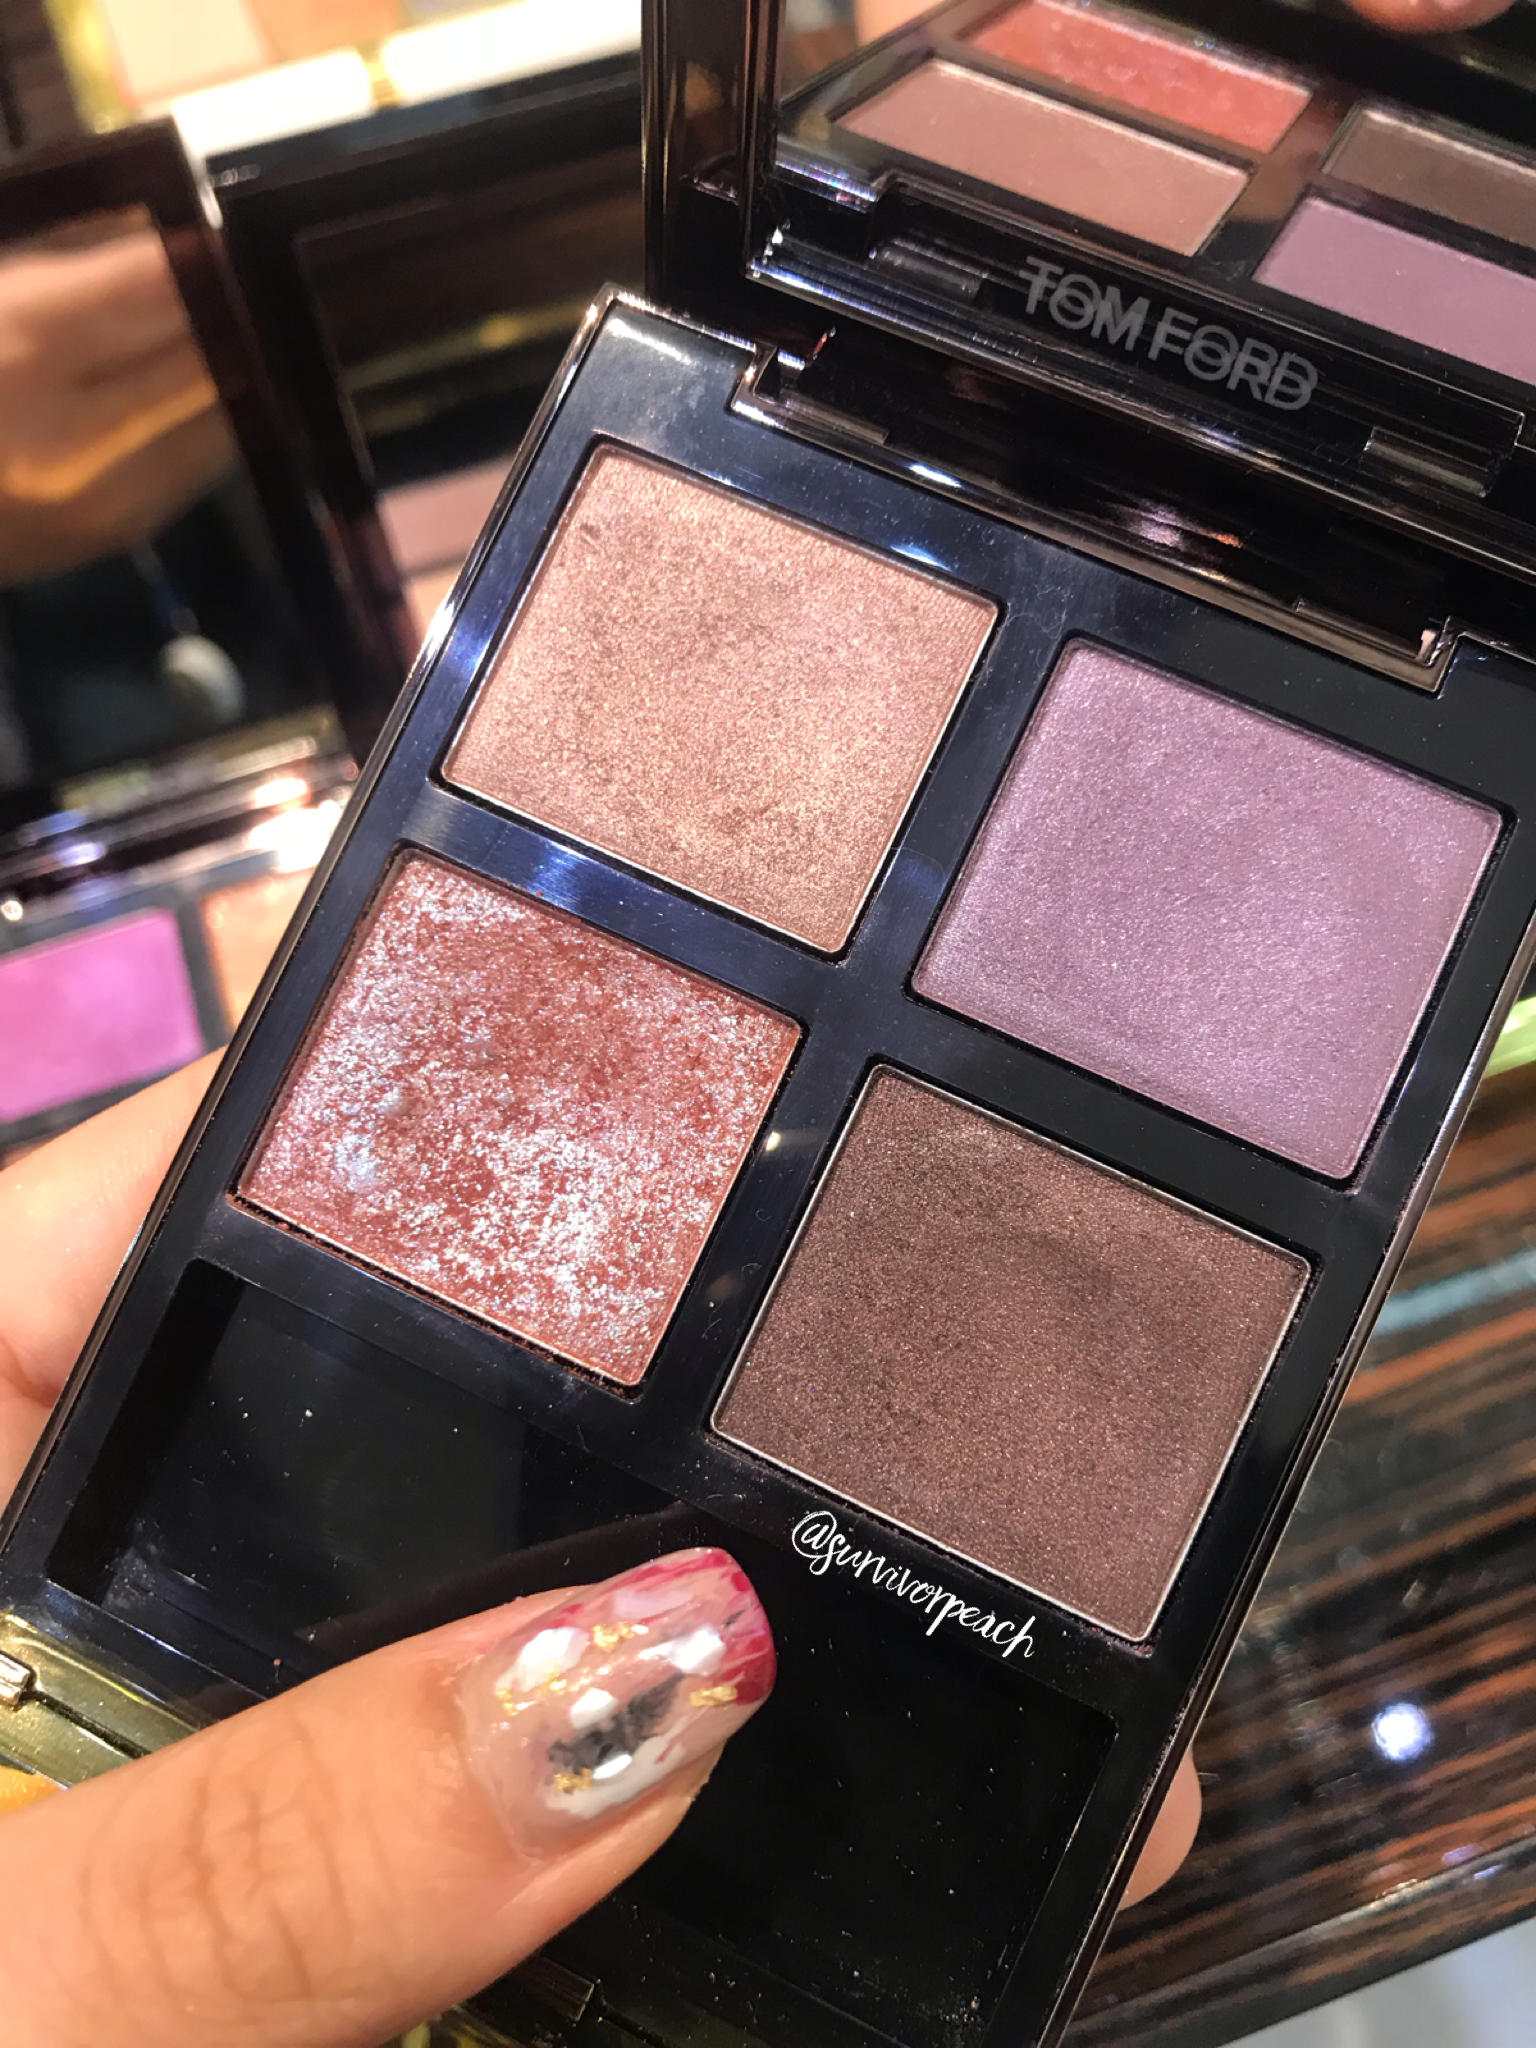 Tom Ford Eye Quad in 25 Pretty Baby